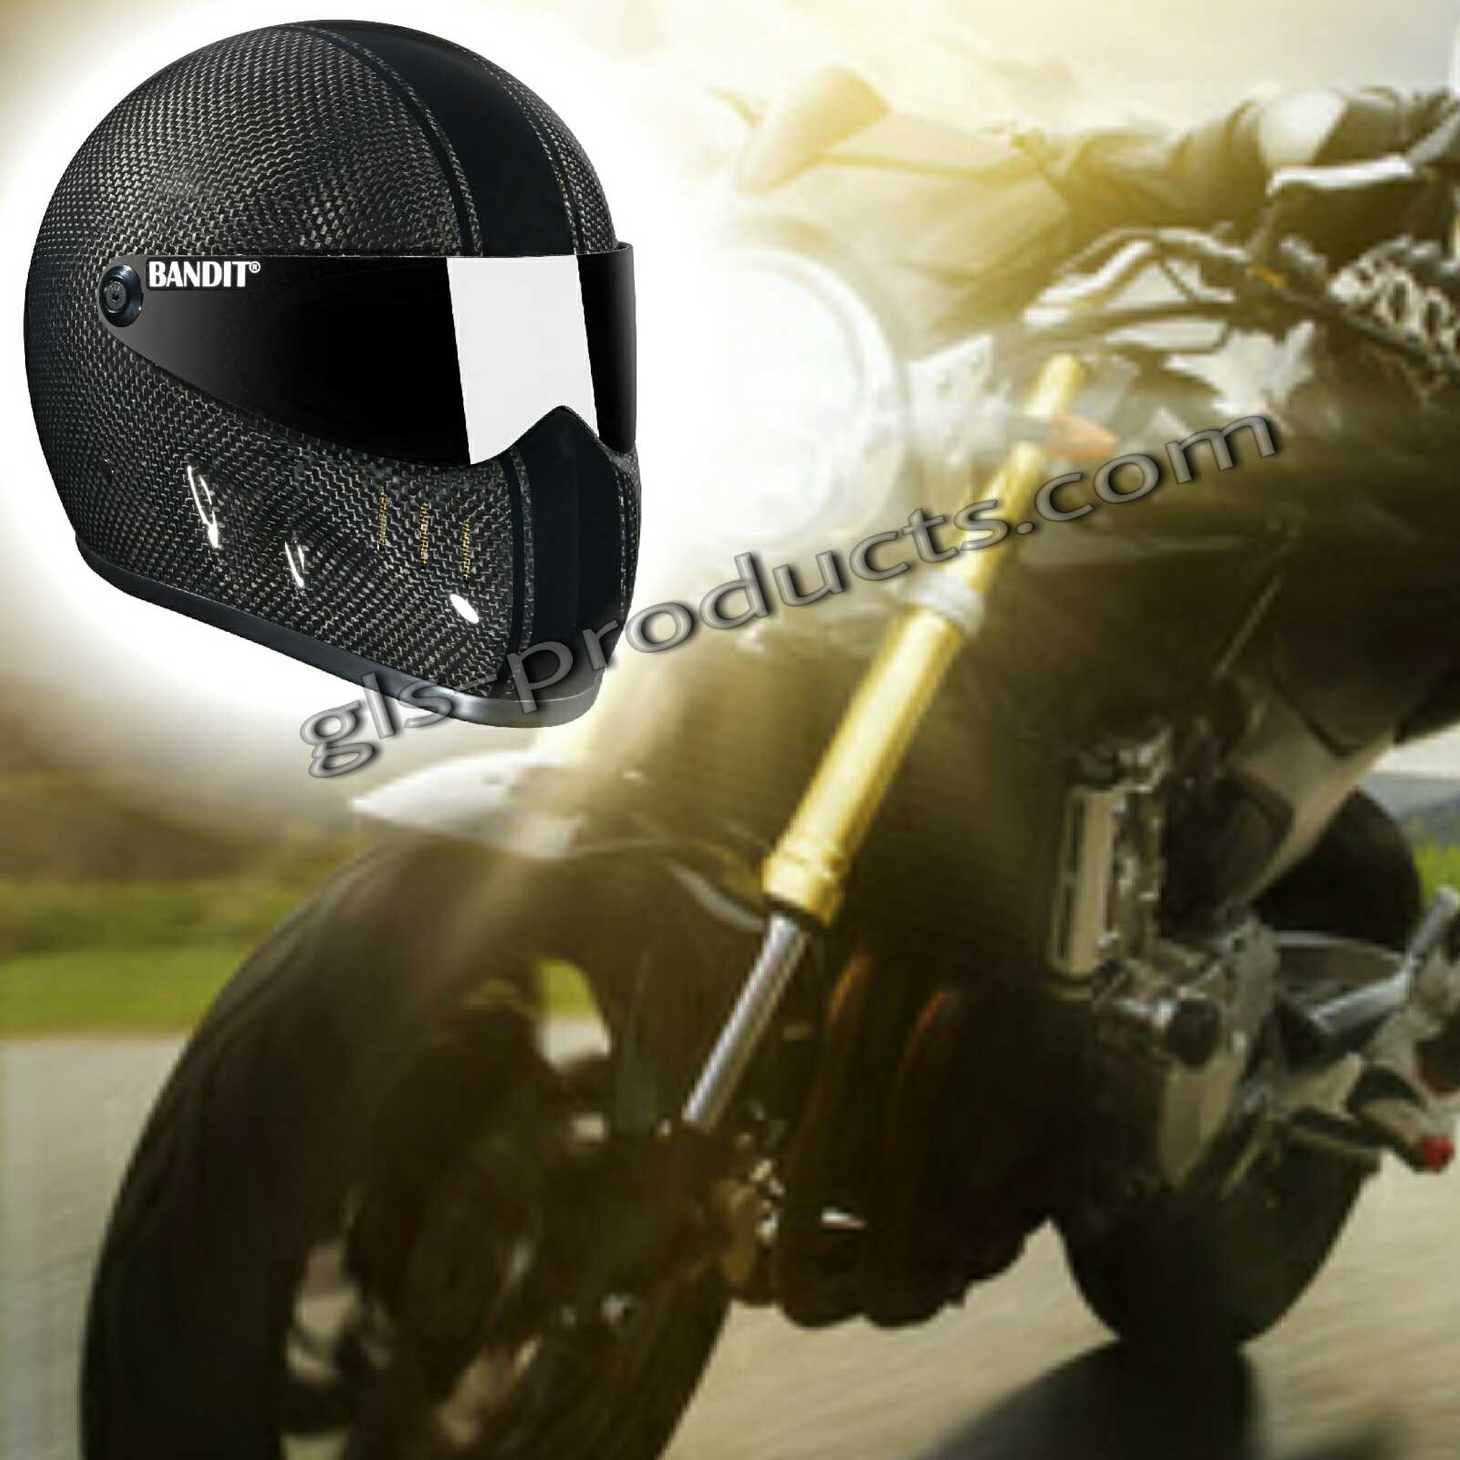 Bandit - XXR Carbon - New Motorcycle Helmet - for Streetfighter, Mad Max – Picture 10